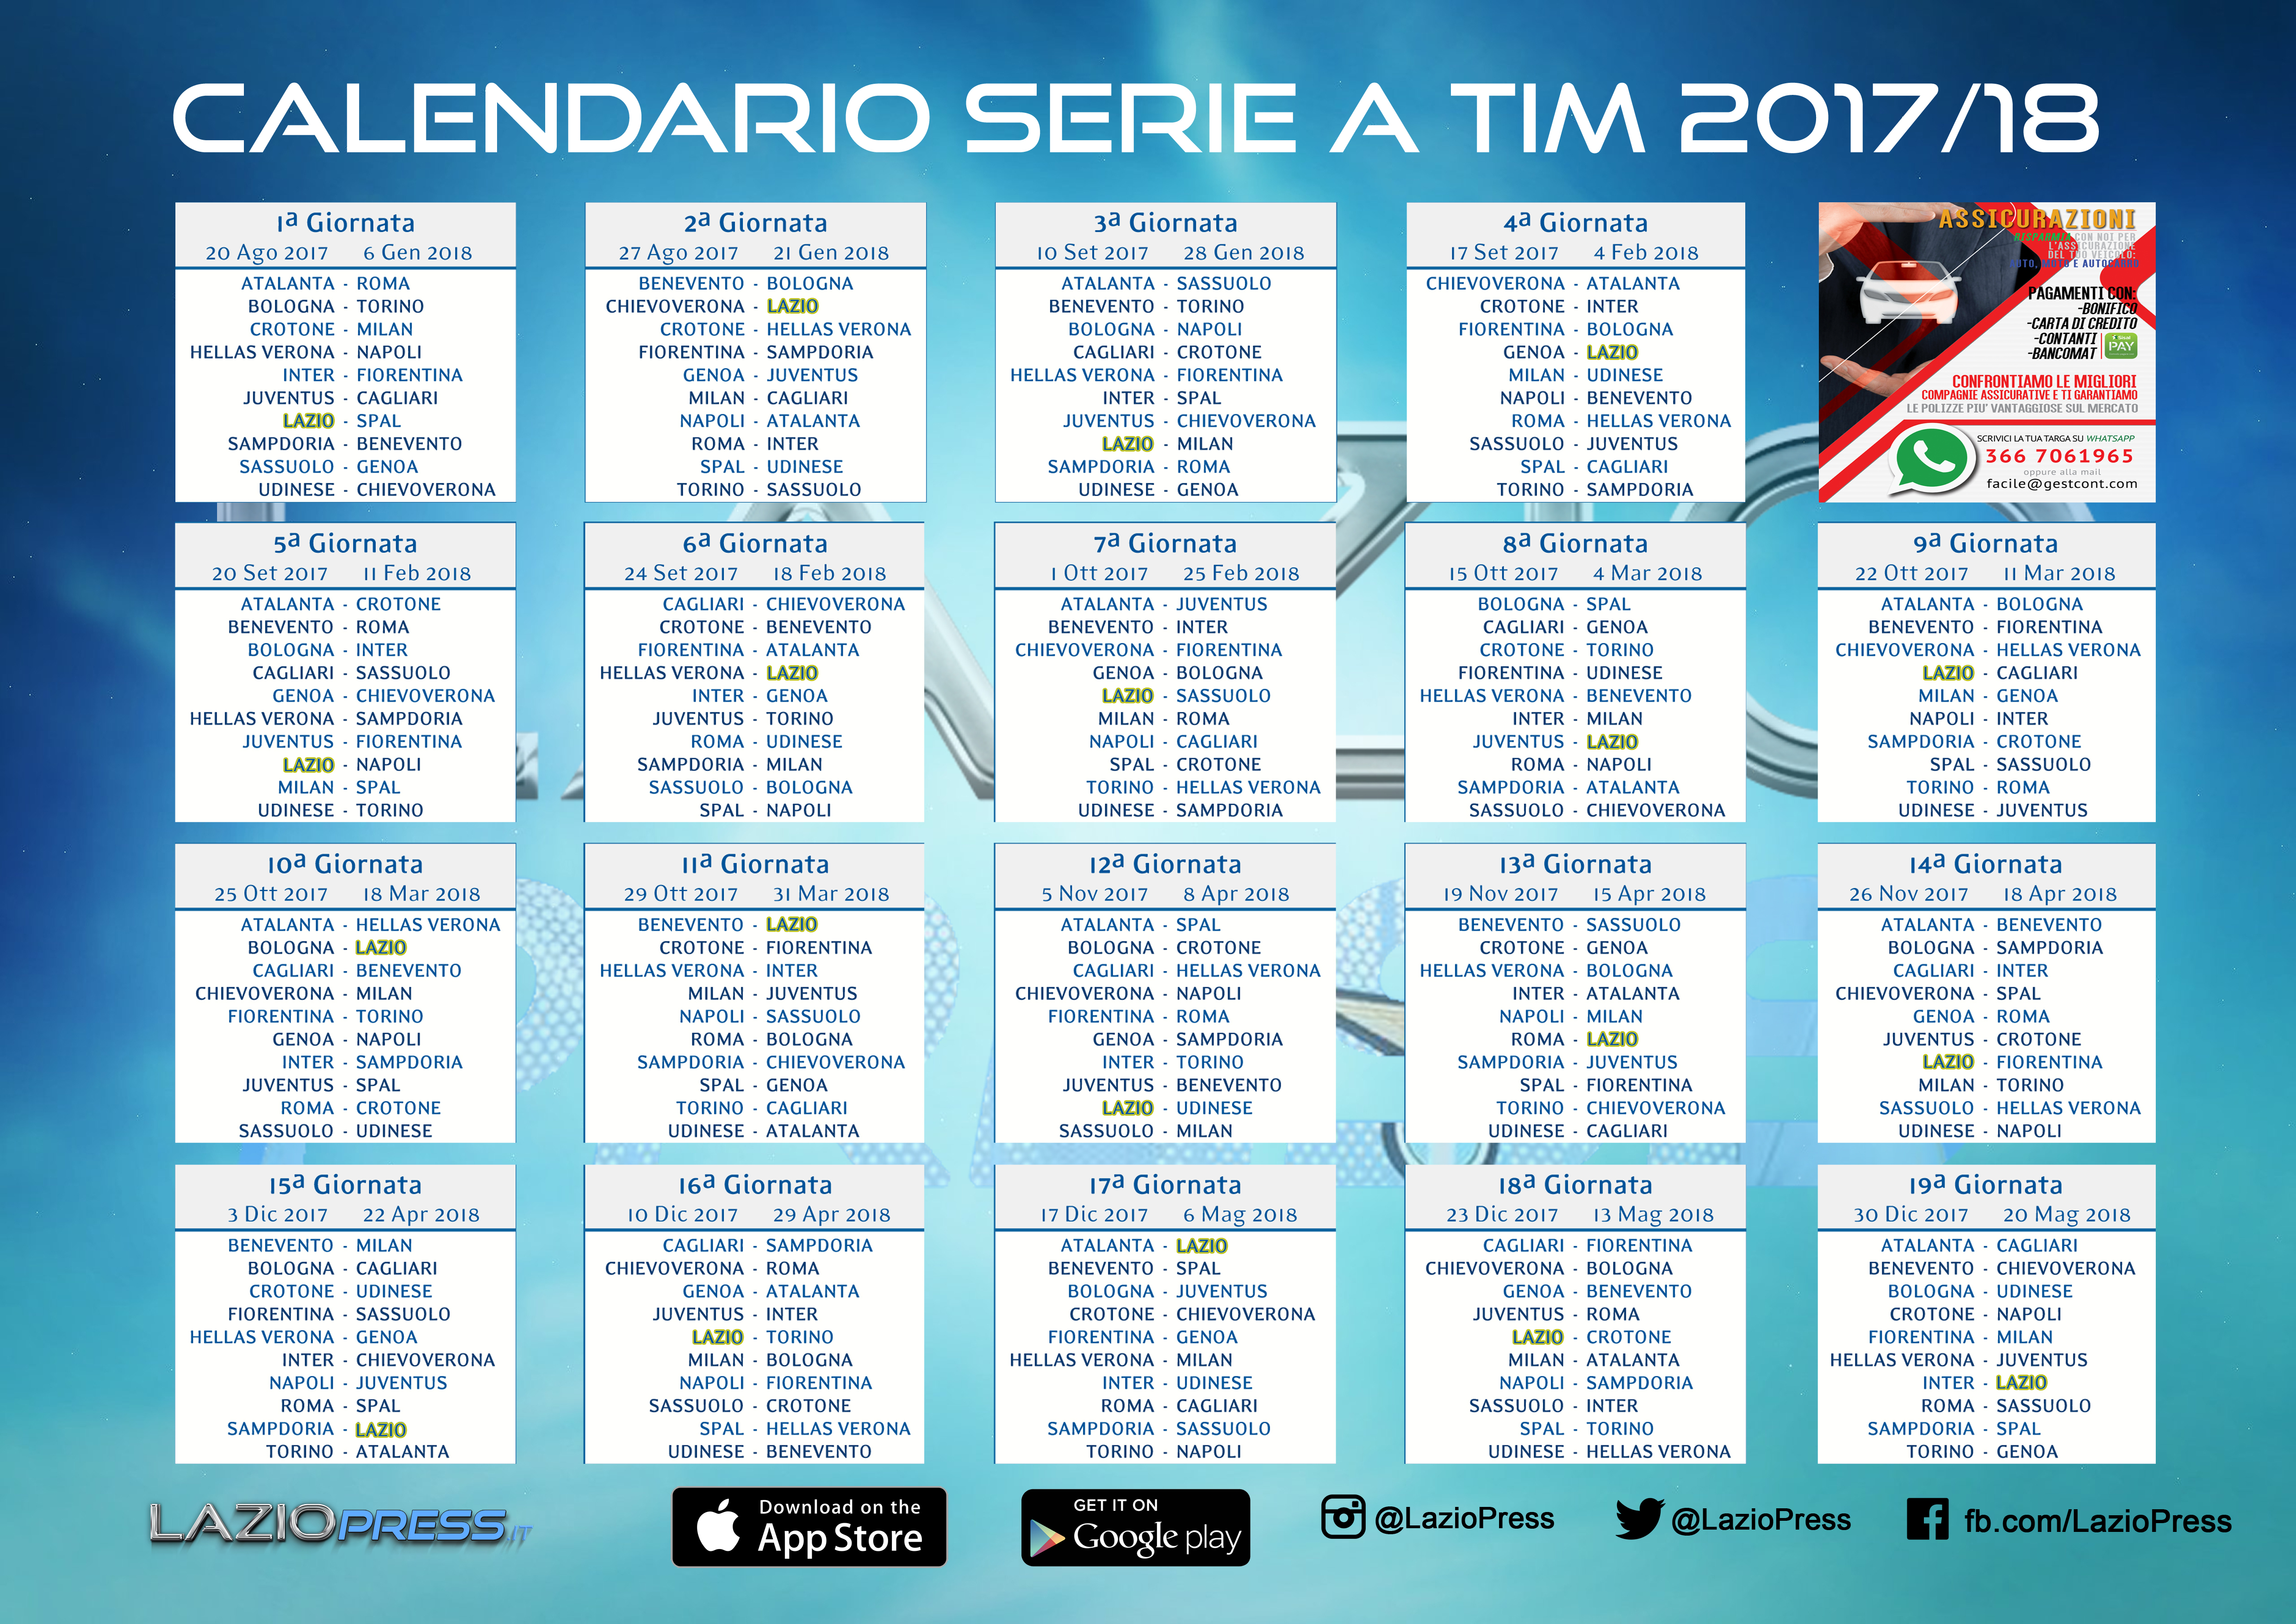 Calendario Setie A.Serie A 2017 18 Scarica Il Calendario Pdf Di Laziopress It